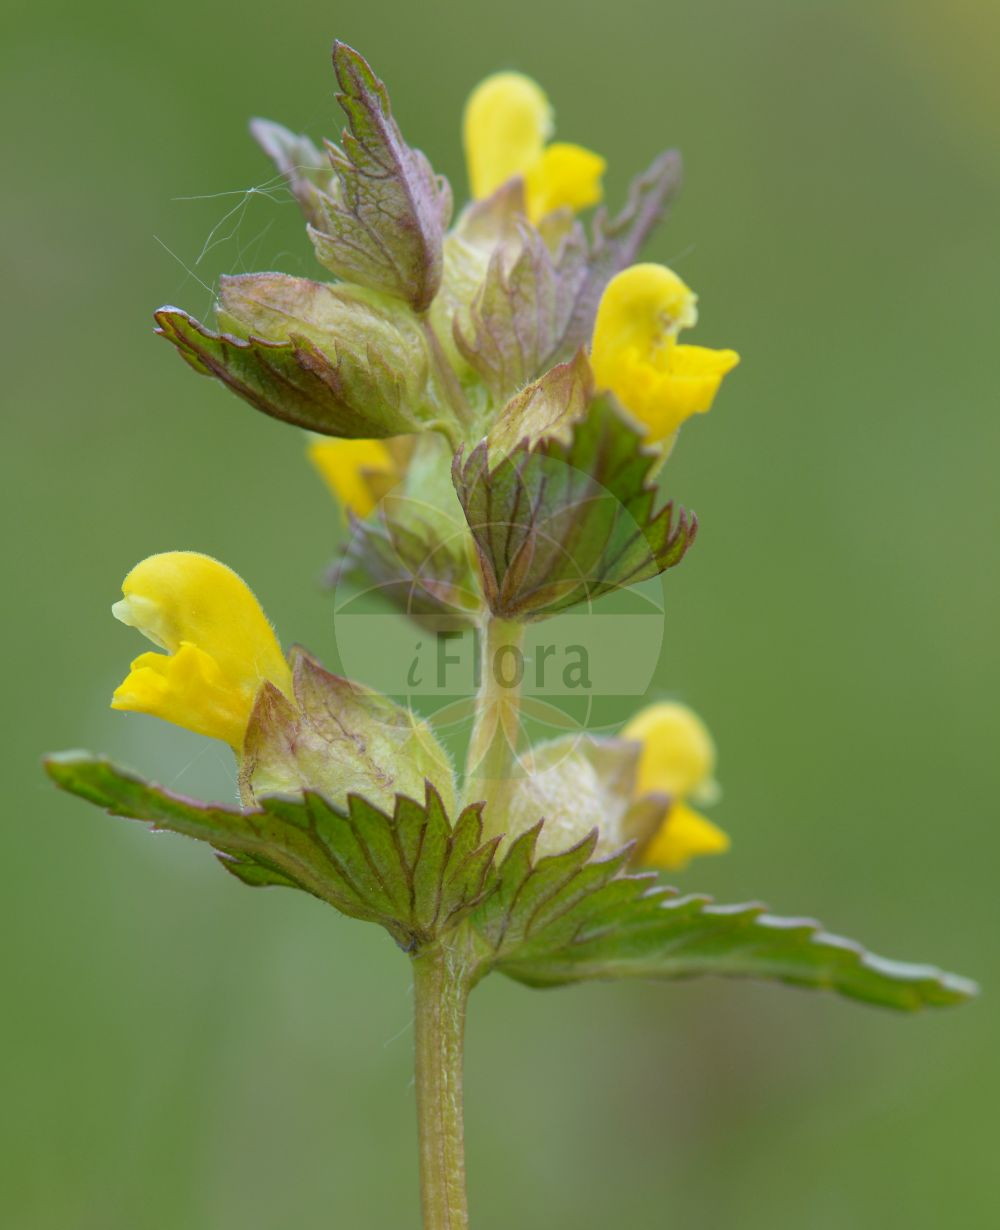 Foto von Rhinanthus minor (Kleiner Klappertopf - Yellow-rattle). Das Bild zeigt Blatt und Bluete. Das Foto wurde in Wetteraukreis, Hessen, Deutschland, Wetterau und Giessener Becken aufgenommen. ---- Photo of Rhinanthus minor (Kleiner Klappertopf - Yellow-rattle).The image is showing leaf and flower.The picture was taken in Wetterau district, Hesse, Germany, Wetterau and Giessener Becken.(Rhinanthus minor,Kleiner Klappertopf,Yellow-rattle,Alectorolophus borealis,Alectorolophus crista-galli,Alectorolophus drummond-hayi,Alectorolophus minor,Alectorolophus monticola,Alectorolophus parviflorus,Alectorolophus rusticulus,Alectorolophus stenophyllus,Rhinanthus balticus,Rhinanthus borealis,Rhinanthus crista-galli L. var.,Rhinanthus hercynicus,L. subsp.,L. var.,Rhinanthus nigricans,Rhinanthus rusticulus,Rhinanthus stenophyllus,Cockscomb Rattleweed,Little Yellow Rattle,Lesser Yellow Rattle,Rhinanthus,Klappertopf,Yellow Rattle,Orobanchaceae,Sommerwurzgewaechse,Broomrape family,Blatt,Bluete,leaf,flower)